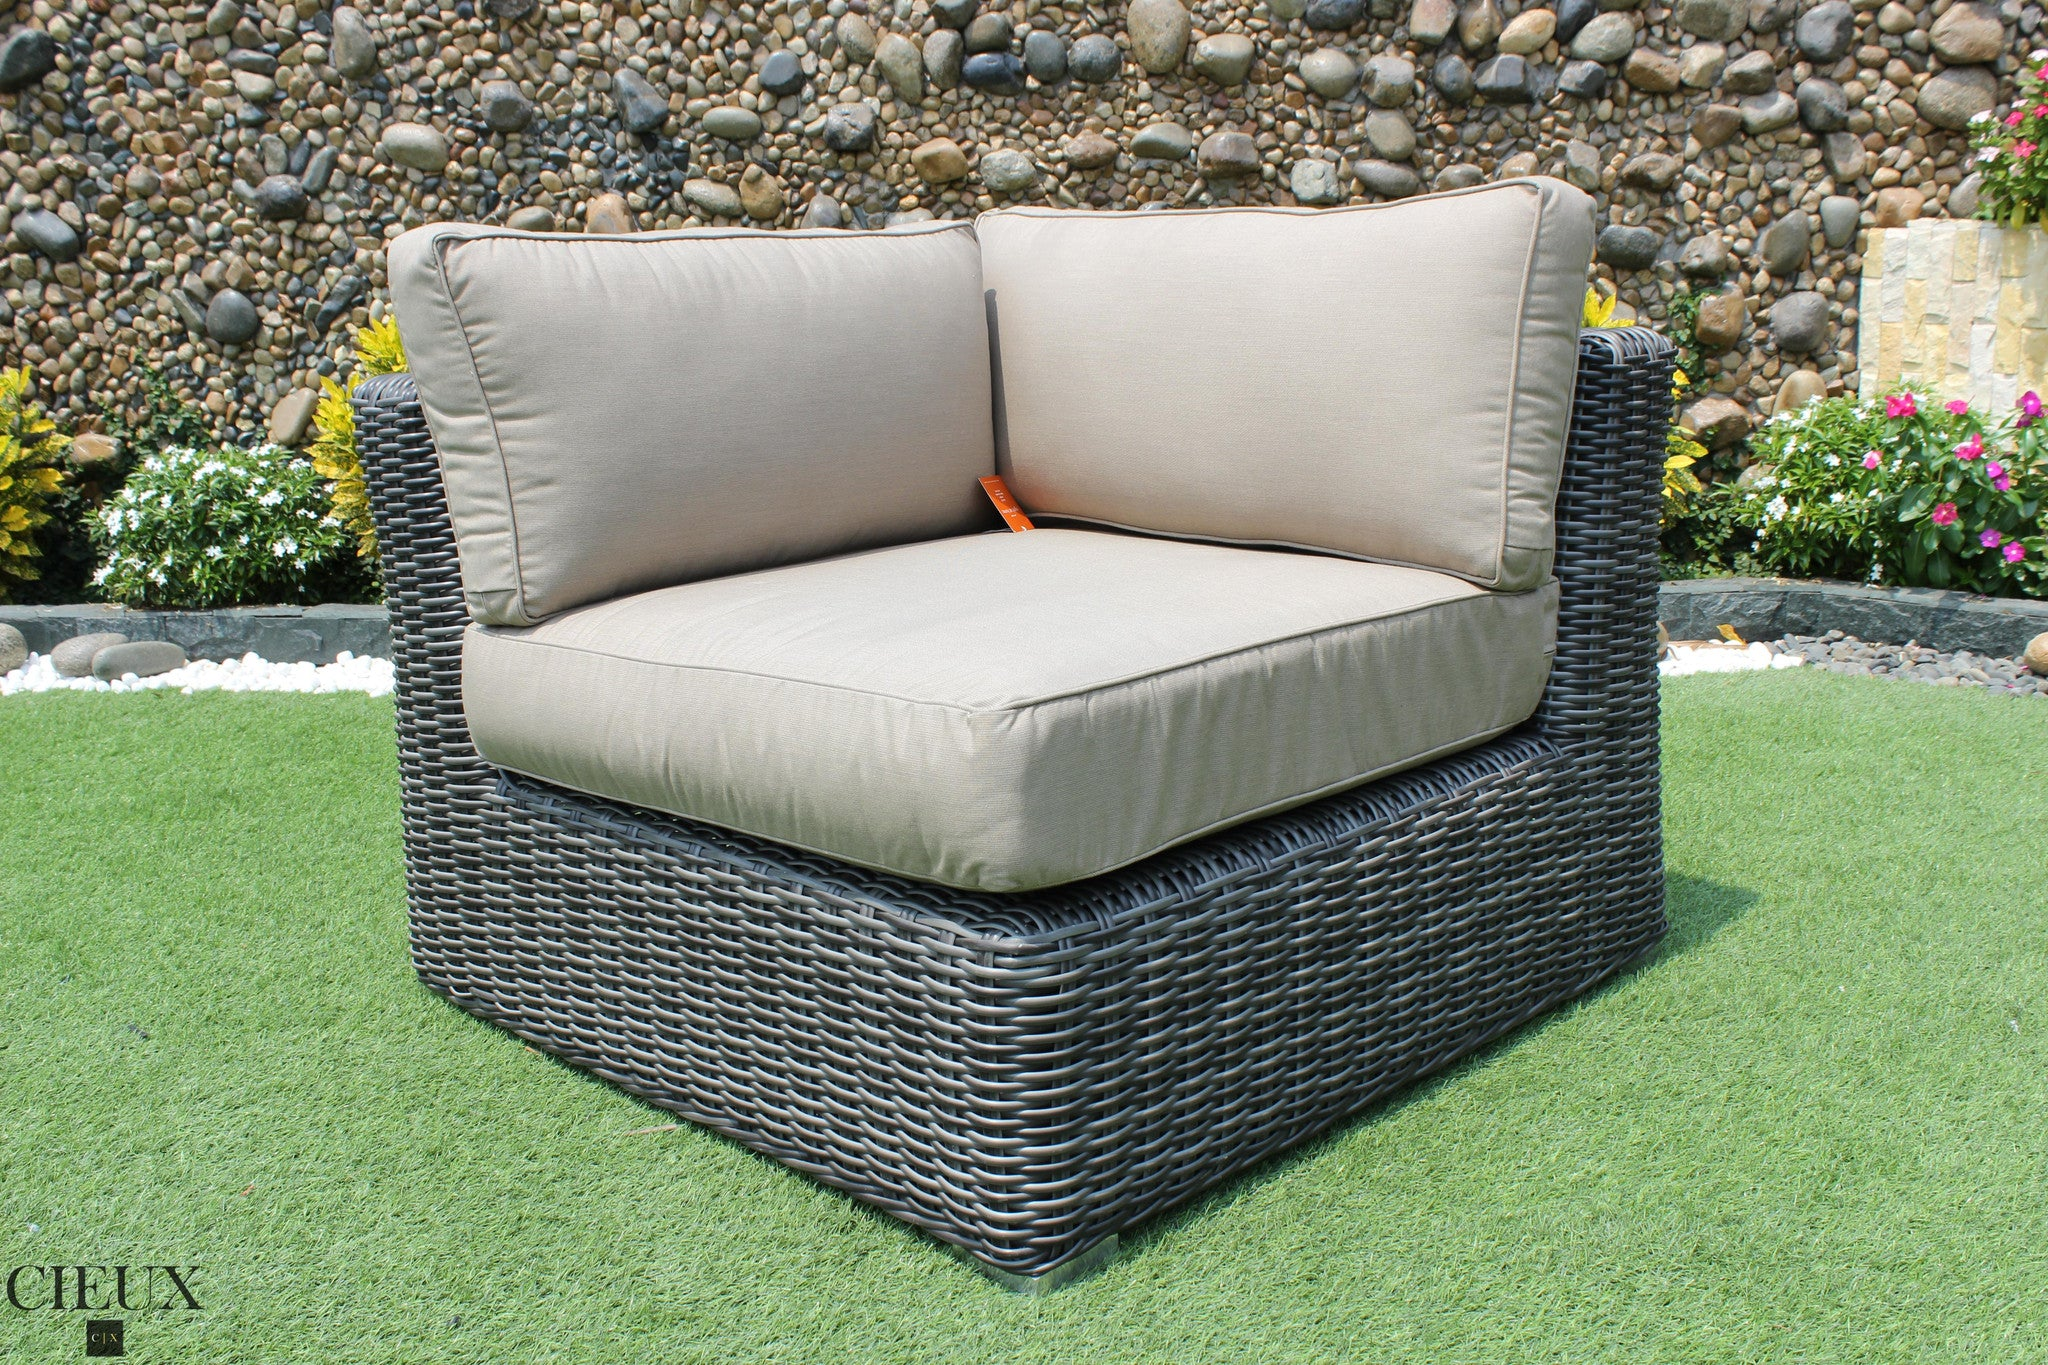 Marseille Wicker Sunbrella Corner Sectional Sofa CIEUX